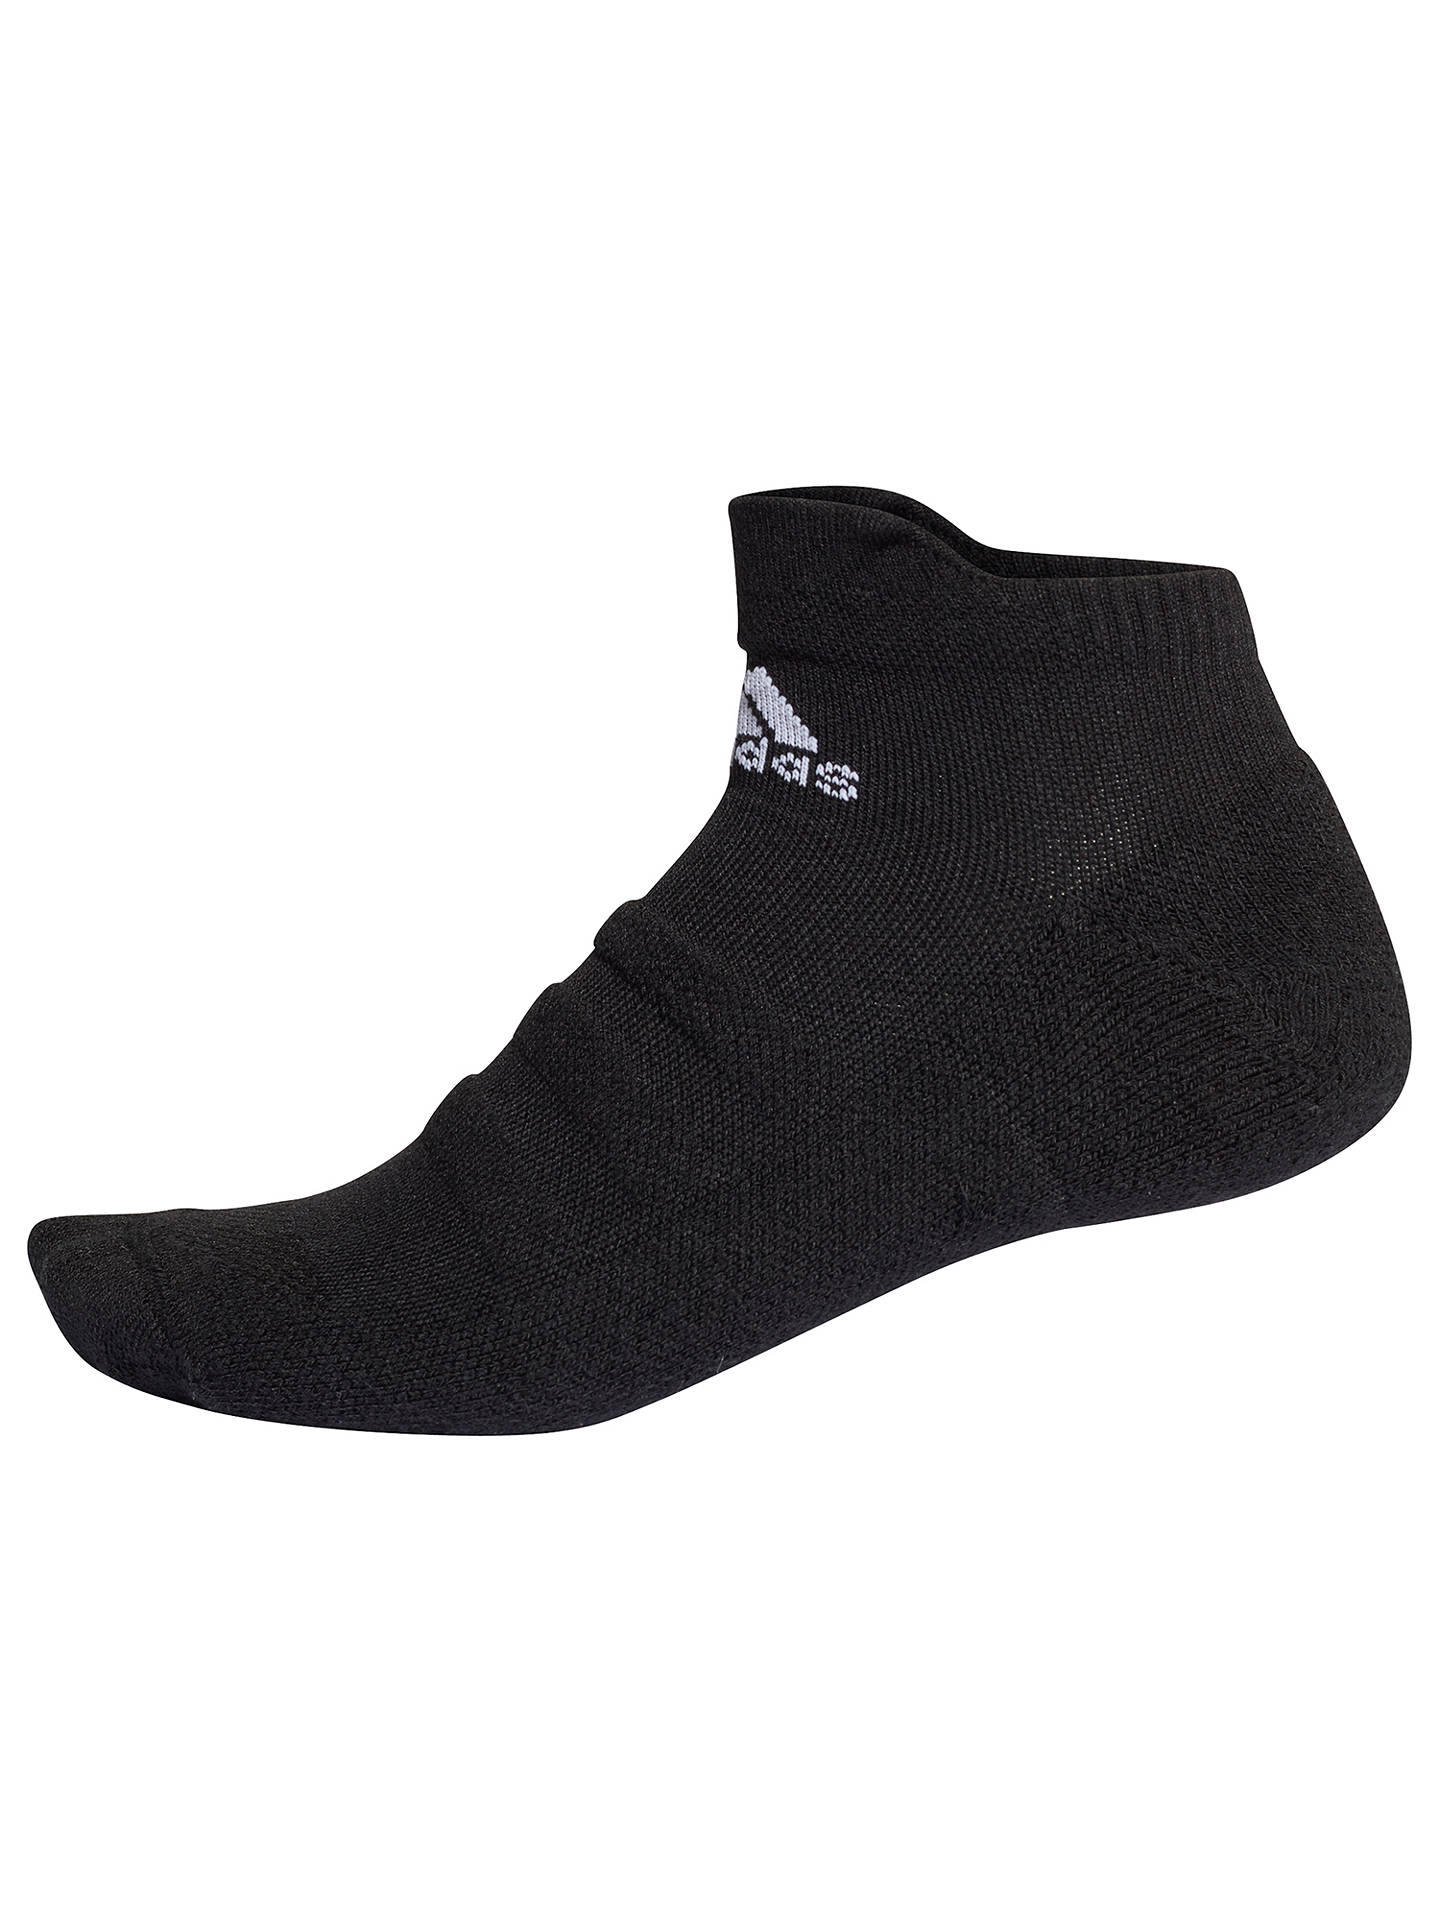 Buyadidas ASK Ankle Training Socks, Black/White, S-M Online at johnlewis.com